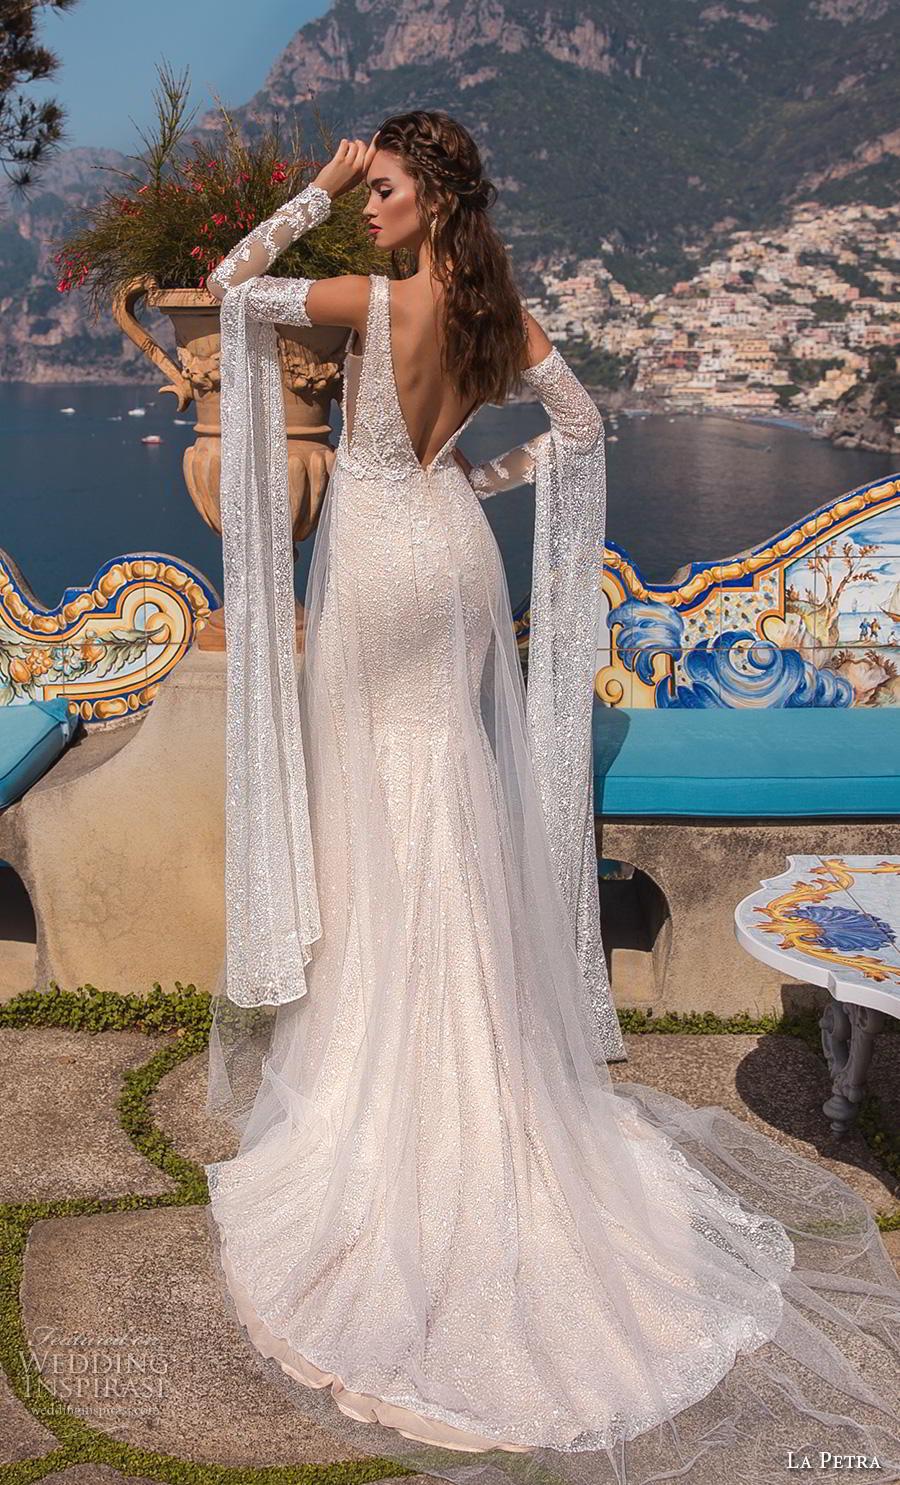 la petra 2019 bridal sleeveless deep plunging v neck full embellishment glitzy glamorous fit and flare wedding dress open v back chapel train (3) bv